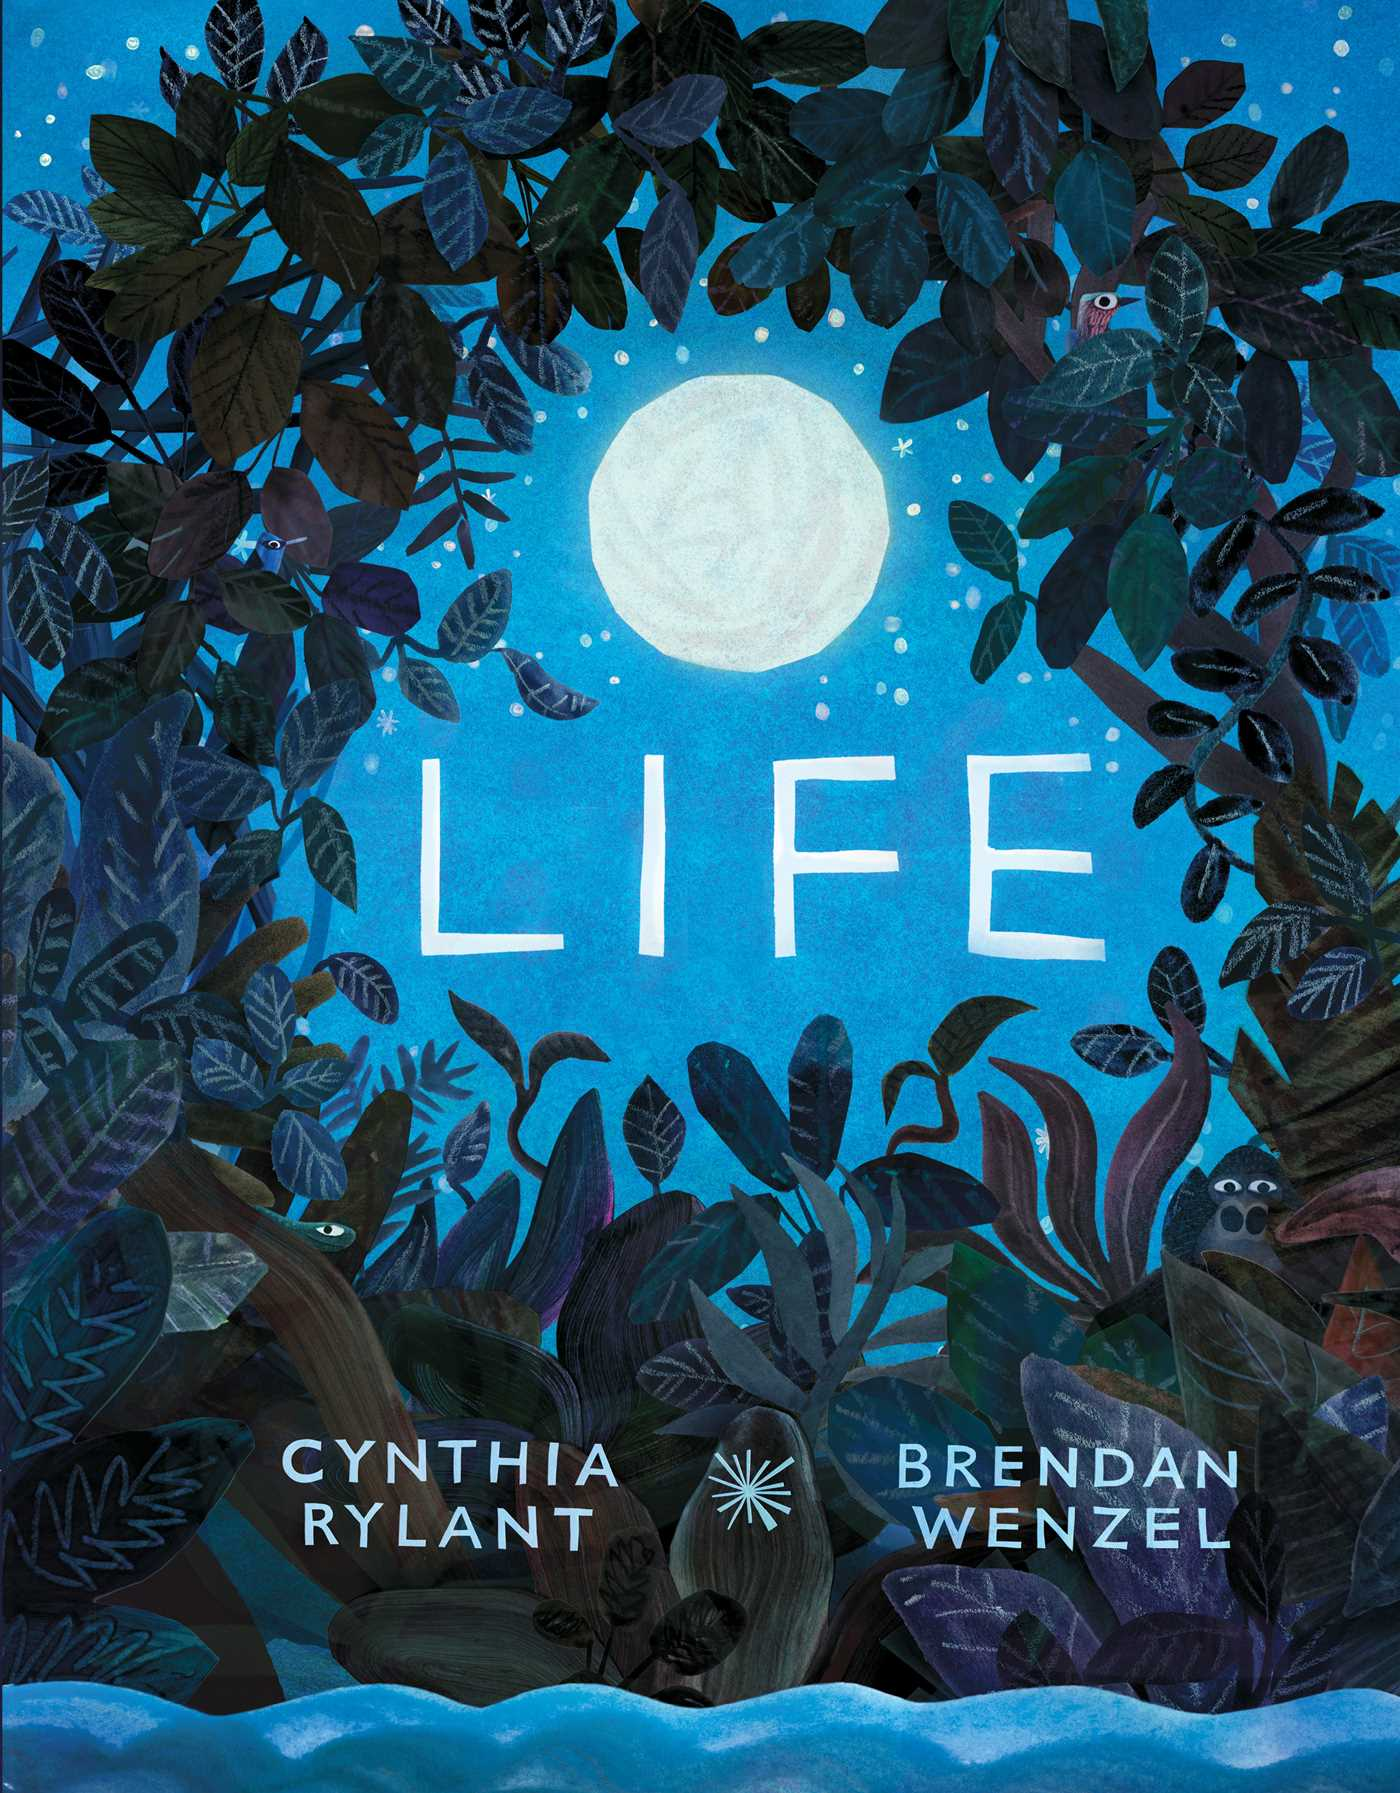 Life By Cynthia Rylant, illustrated by Brendan Wenzel